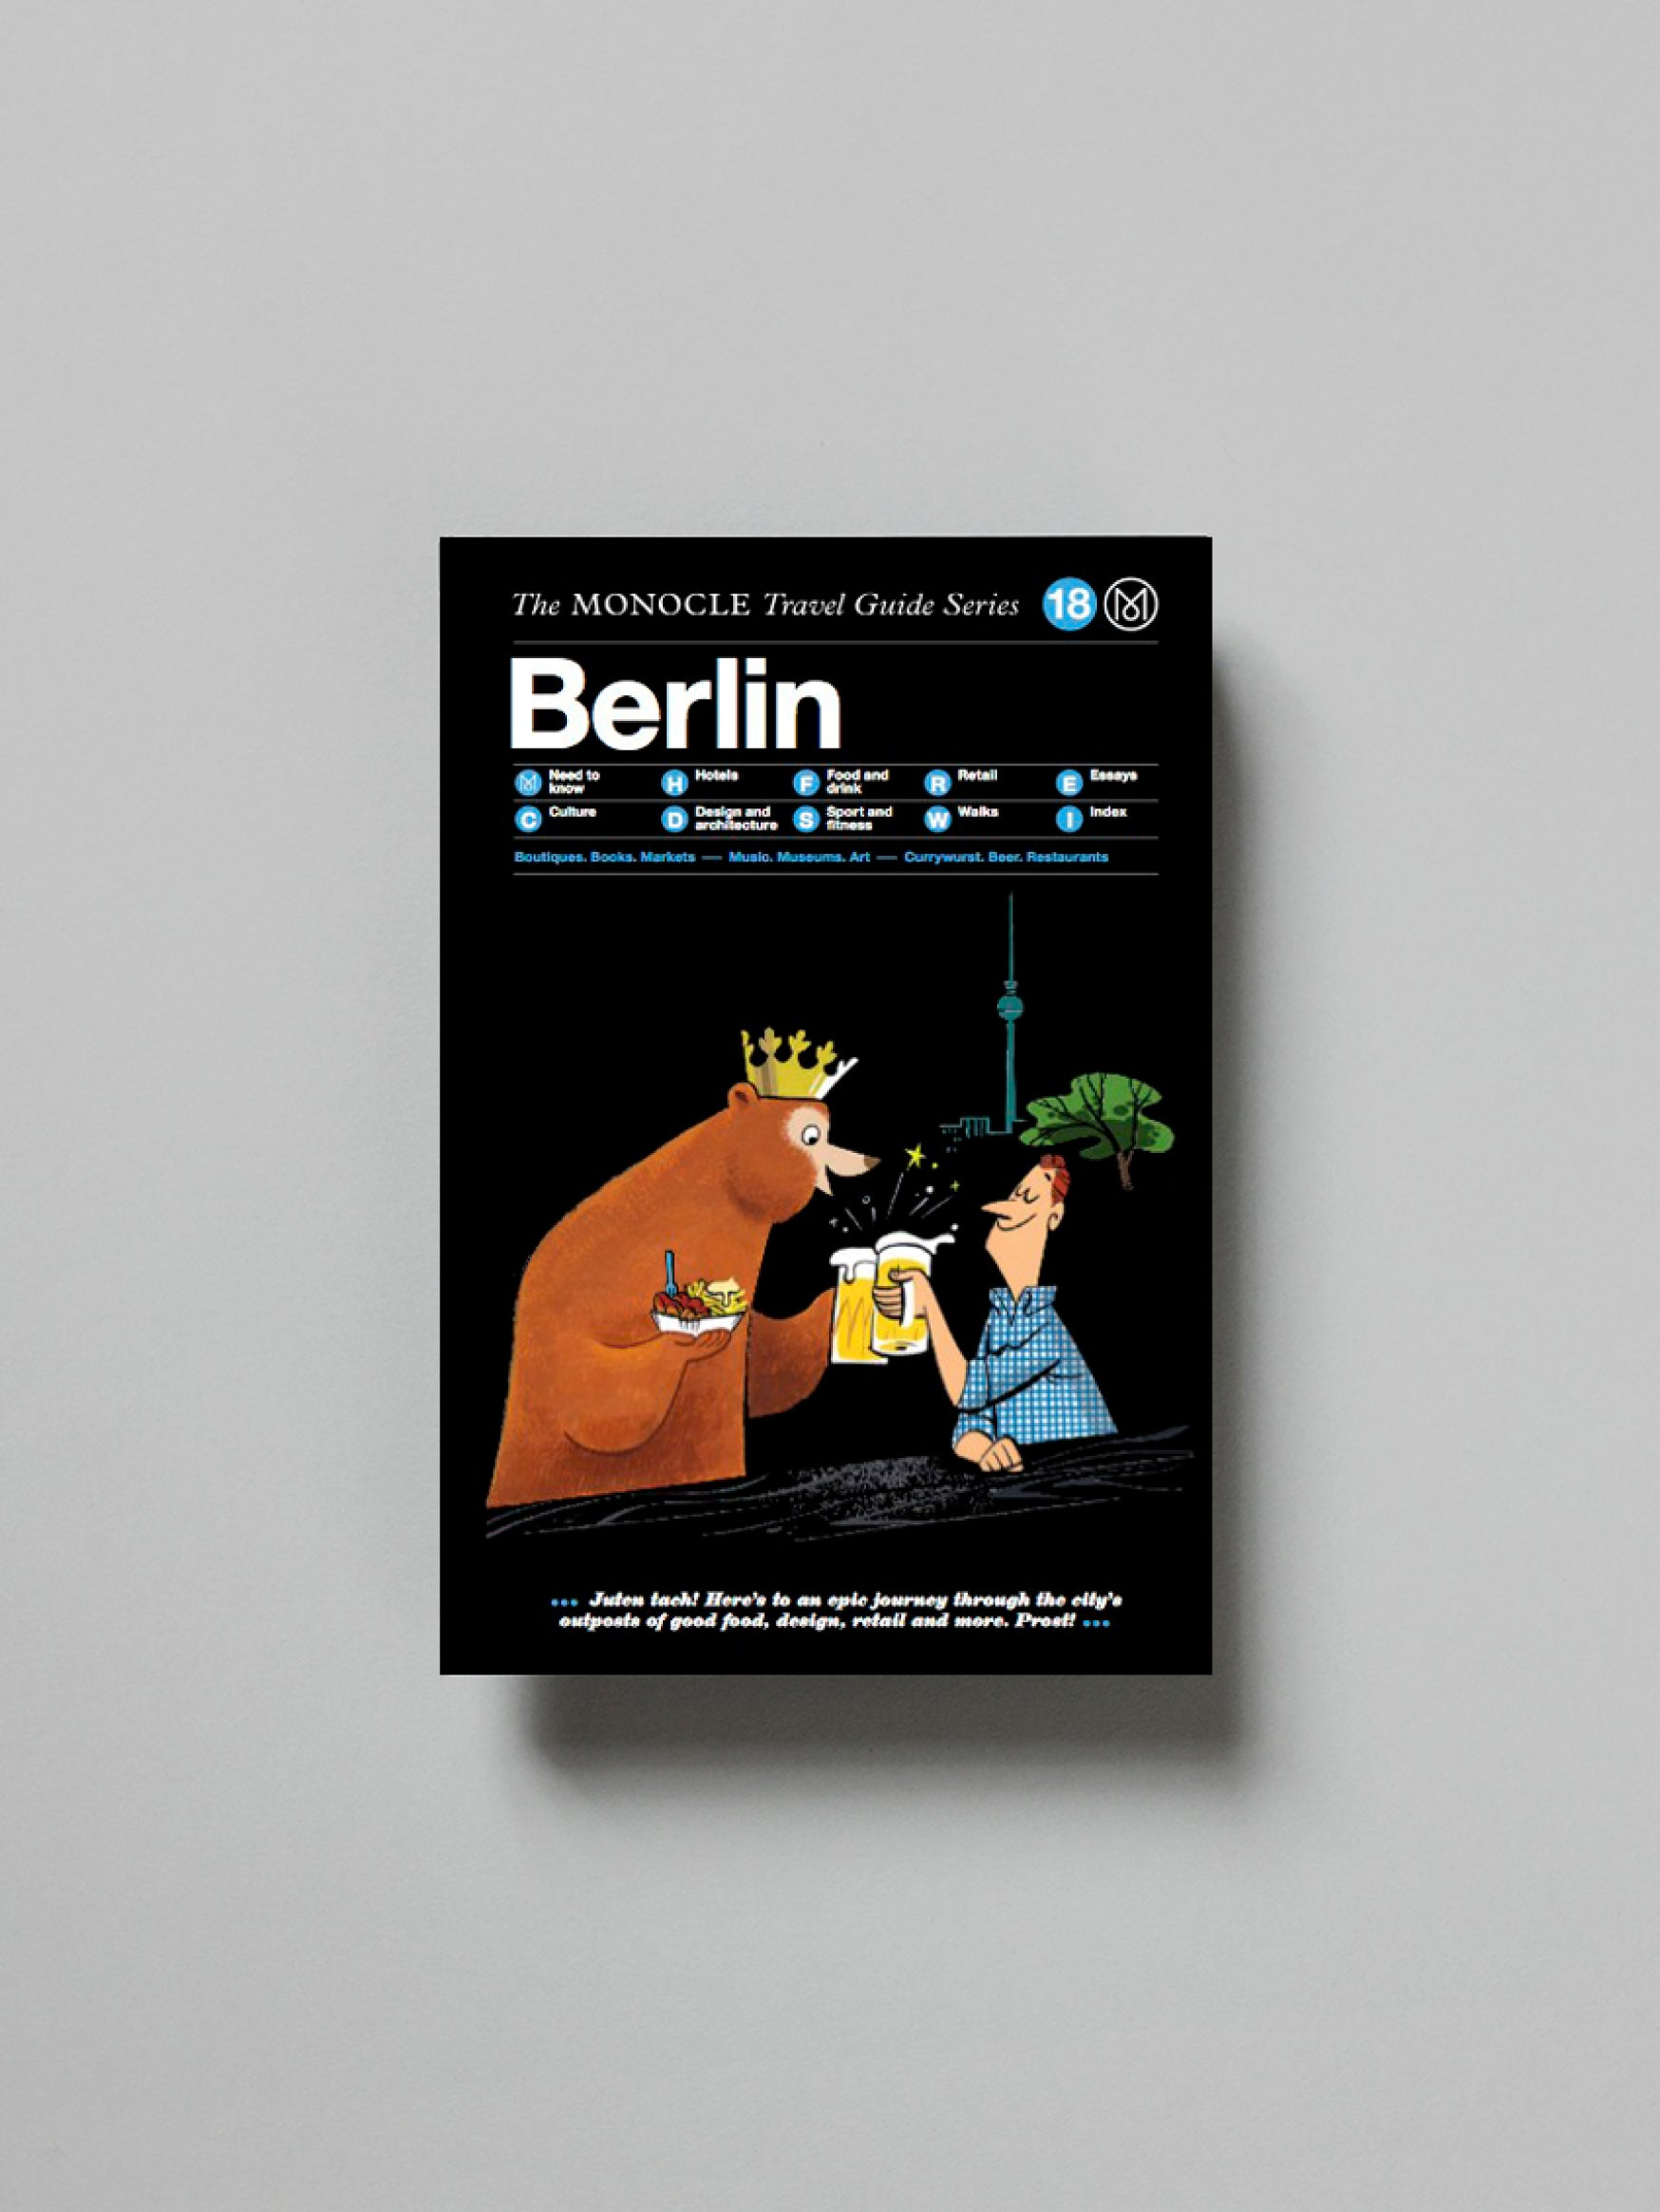 Berlin: The Monocle Travel Guide Series